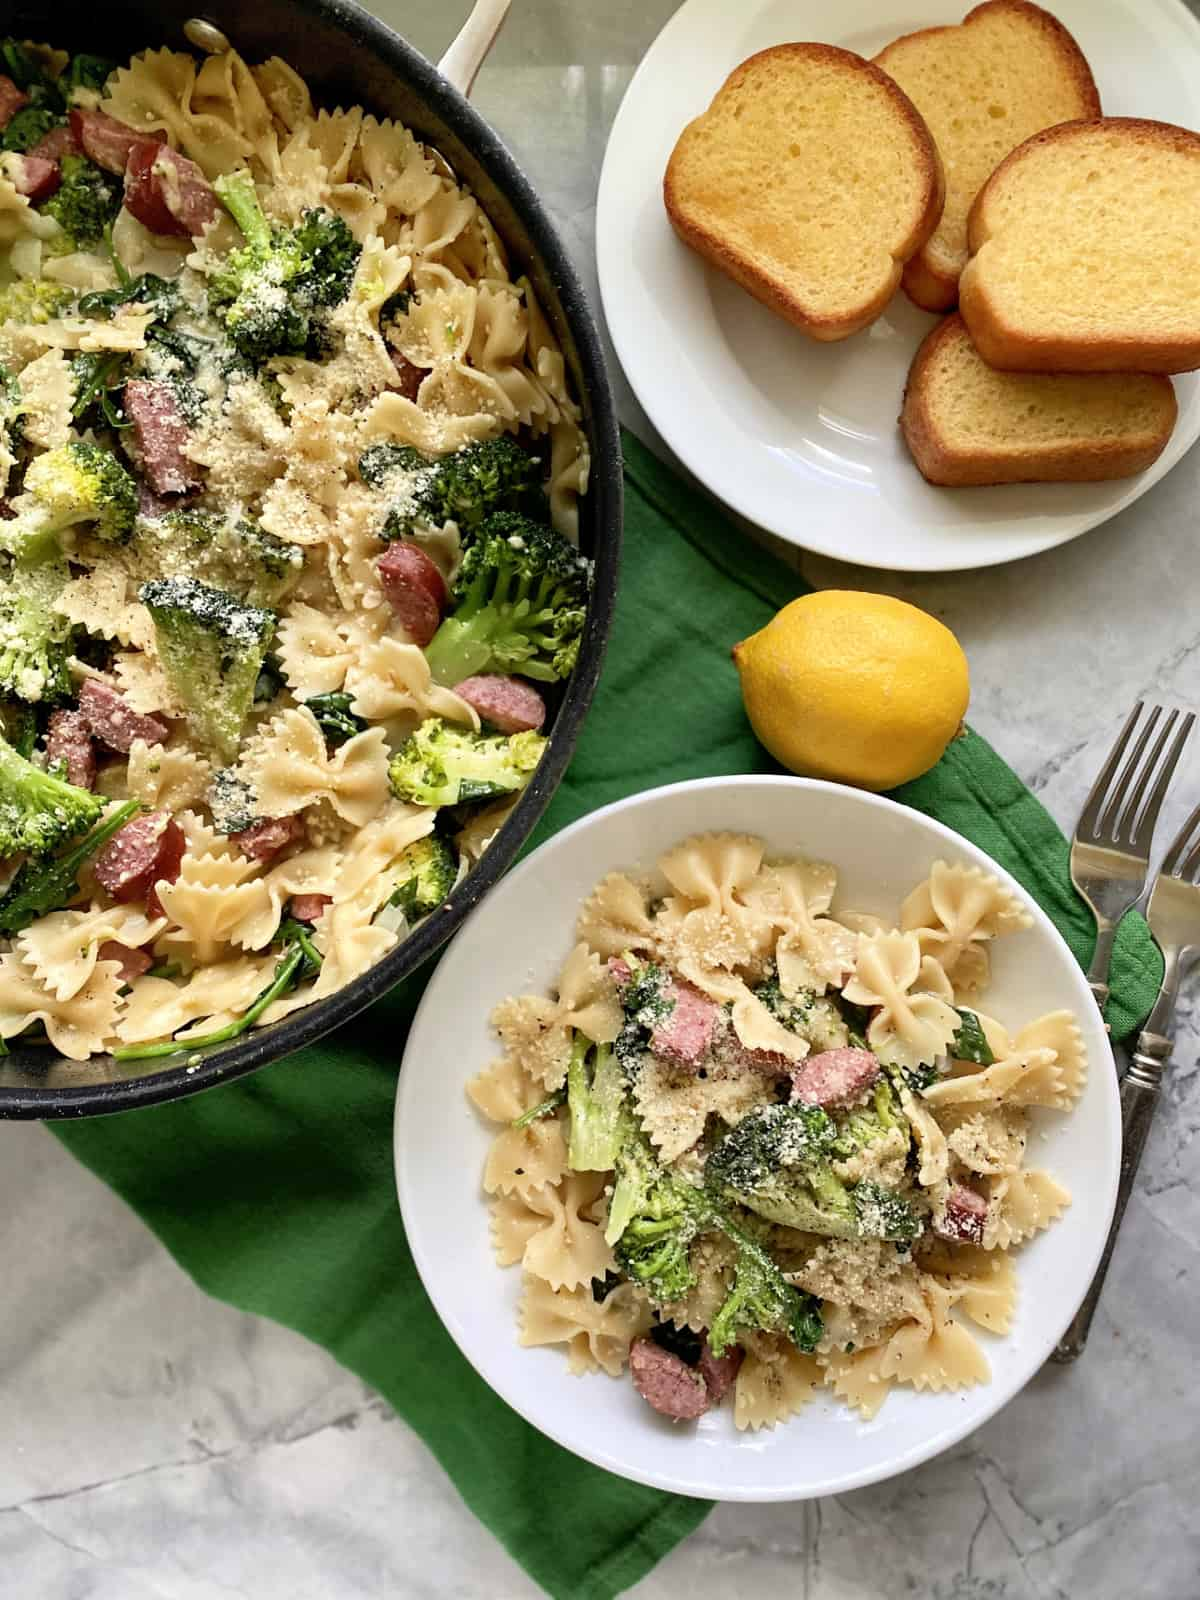 Top view of a black skillet and white bowl filled with bow tie pasta, broccoli, and kielbasa with bread on the side.